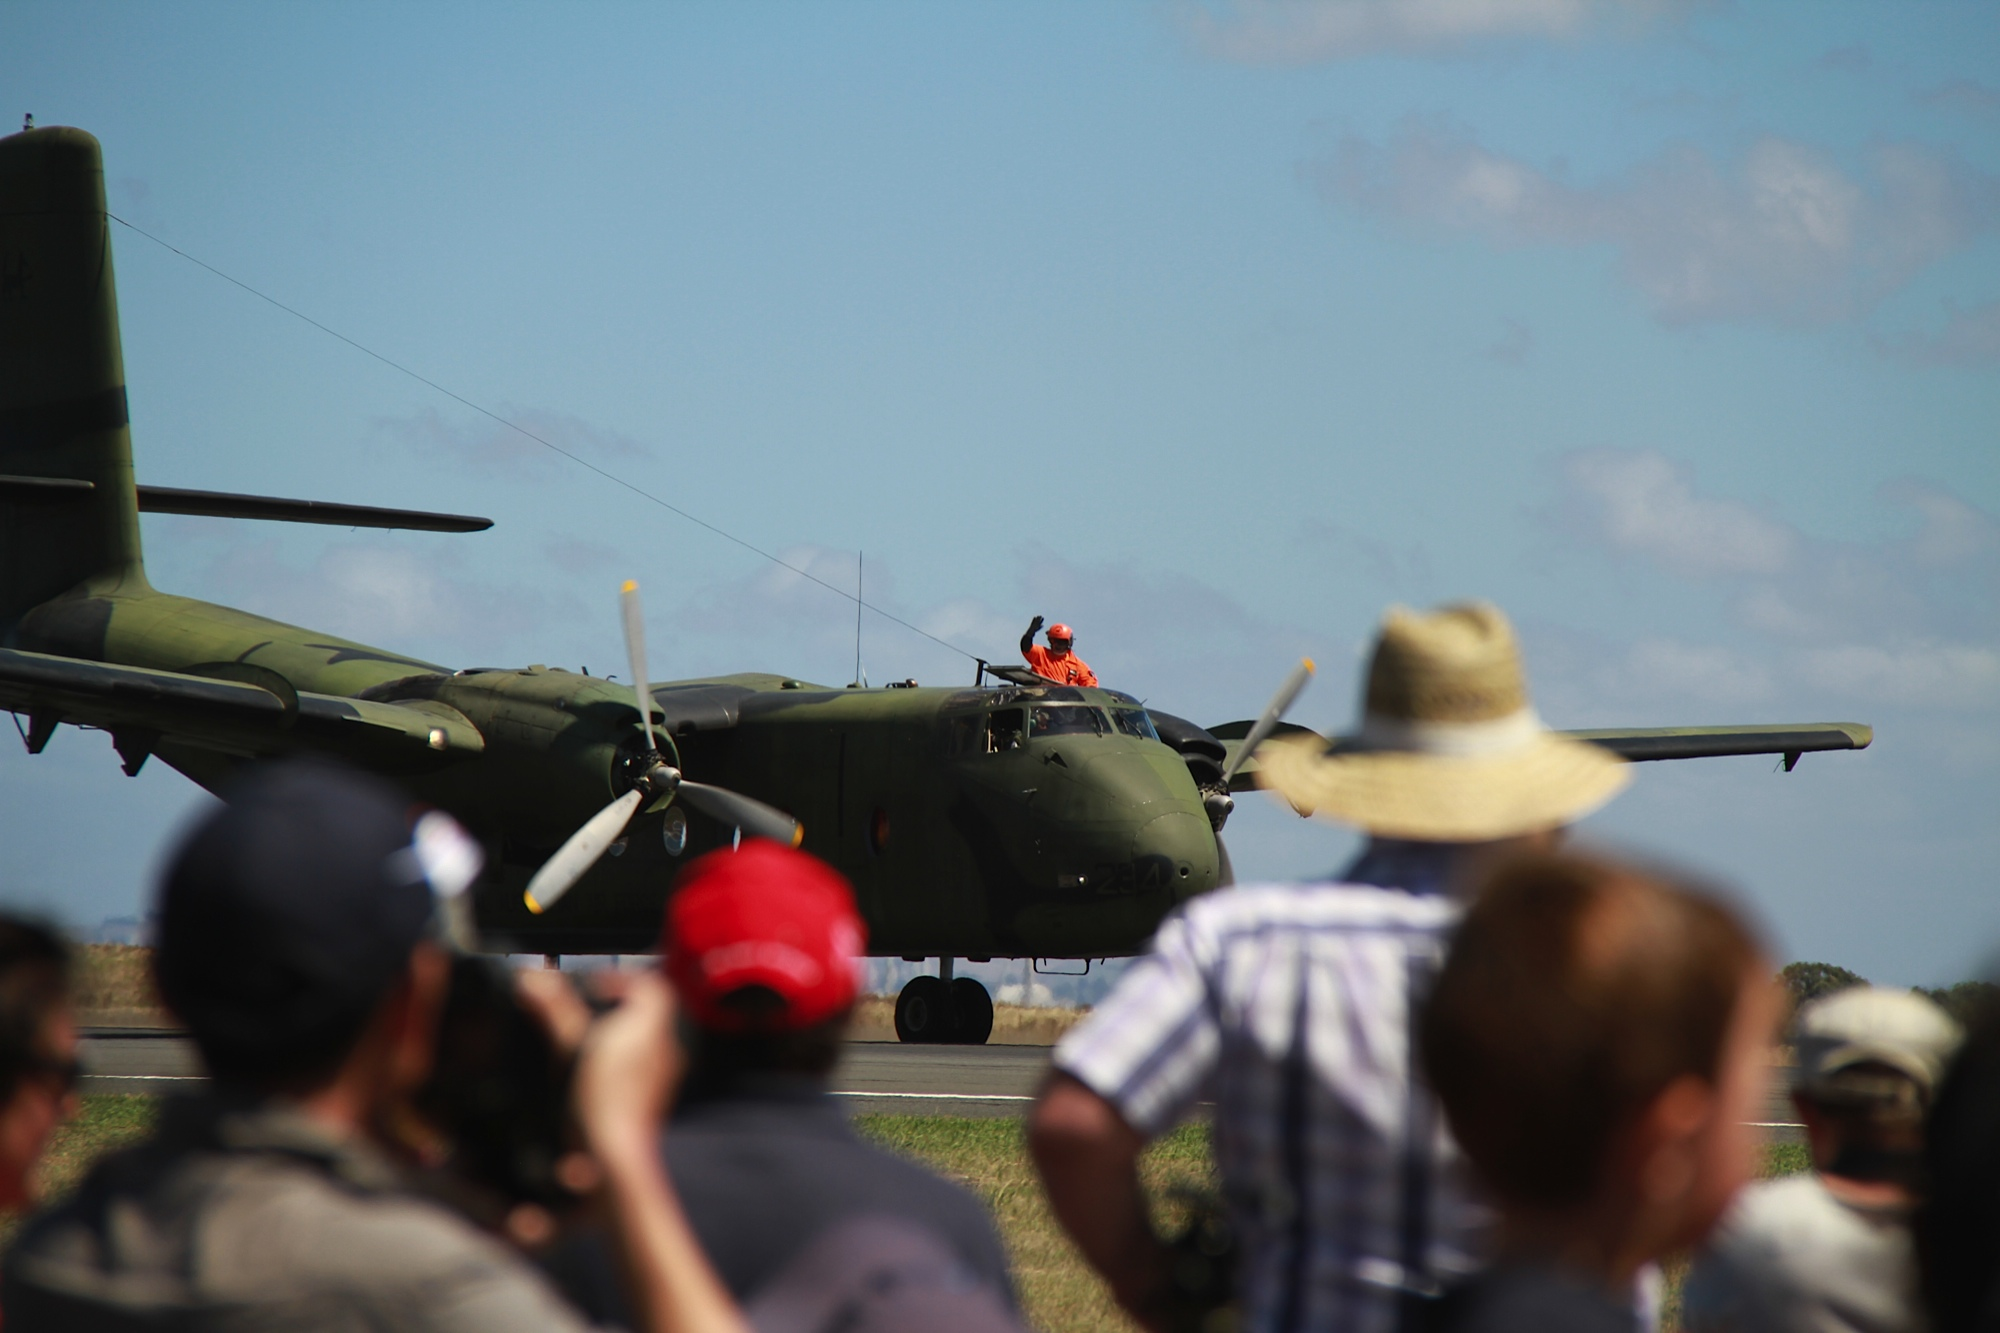 A4-234 wowing crowds at Avalon 2013